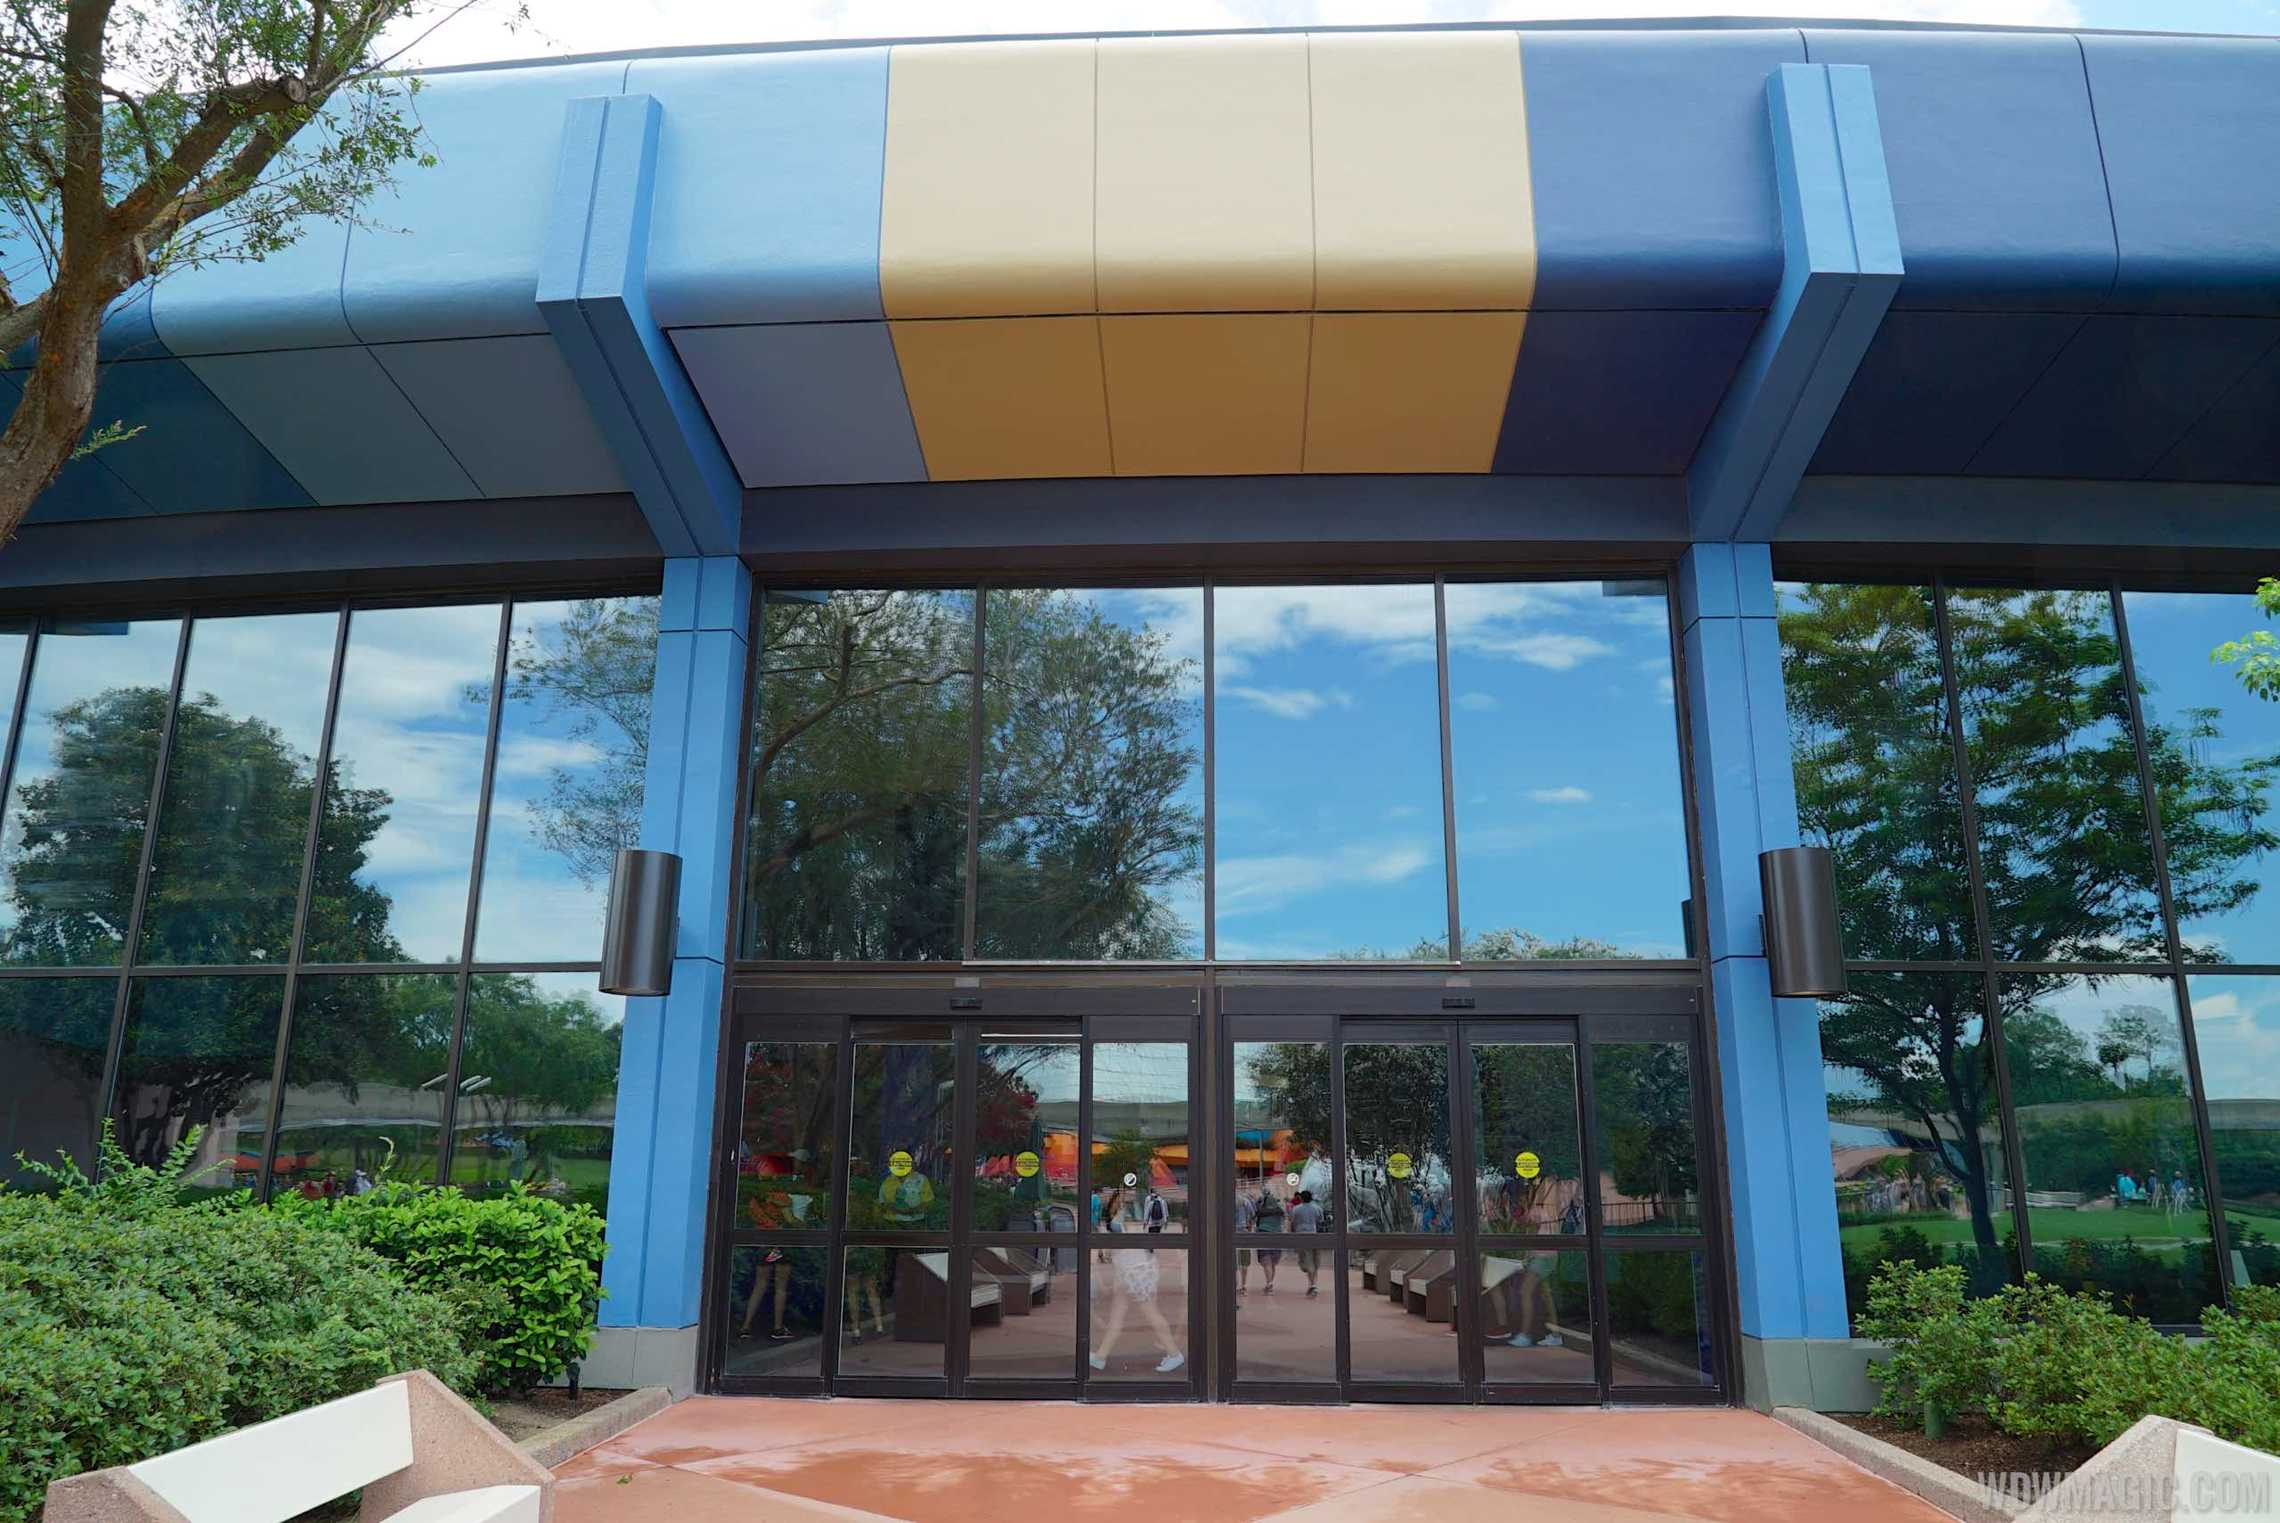 Entrance to the Innoventions D-Zone